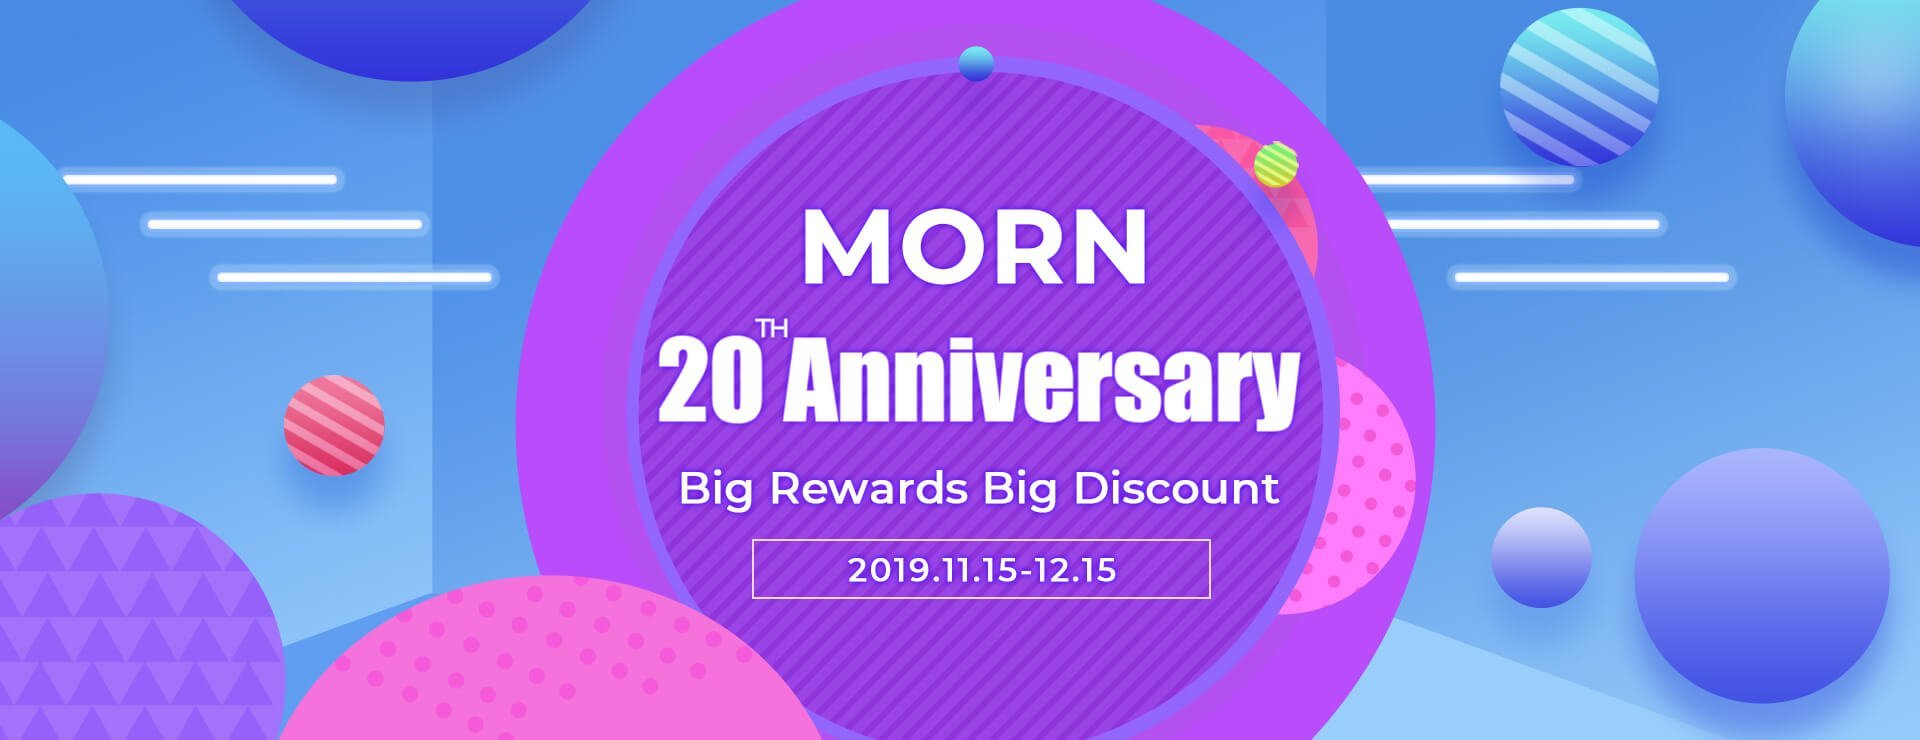 MORN 20 Anniversary Promotion 2